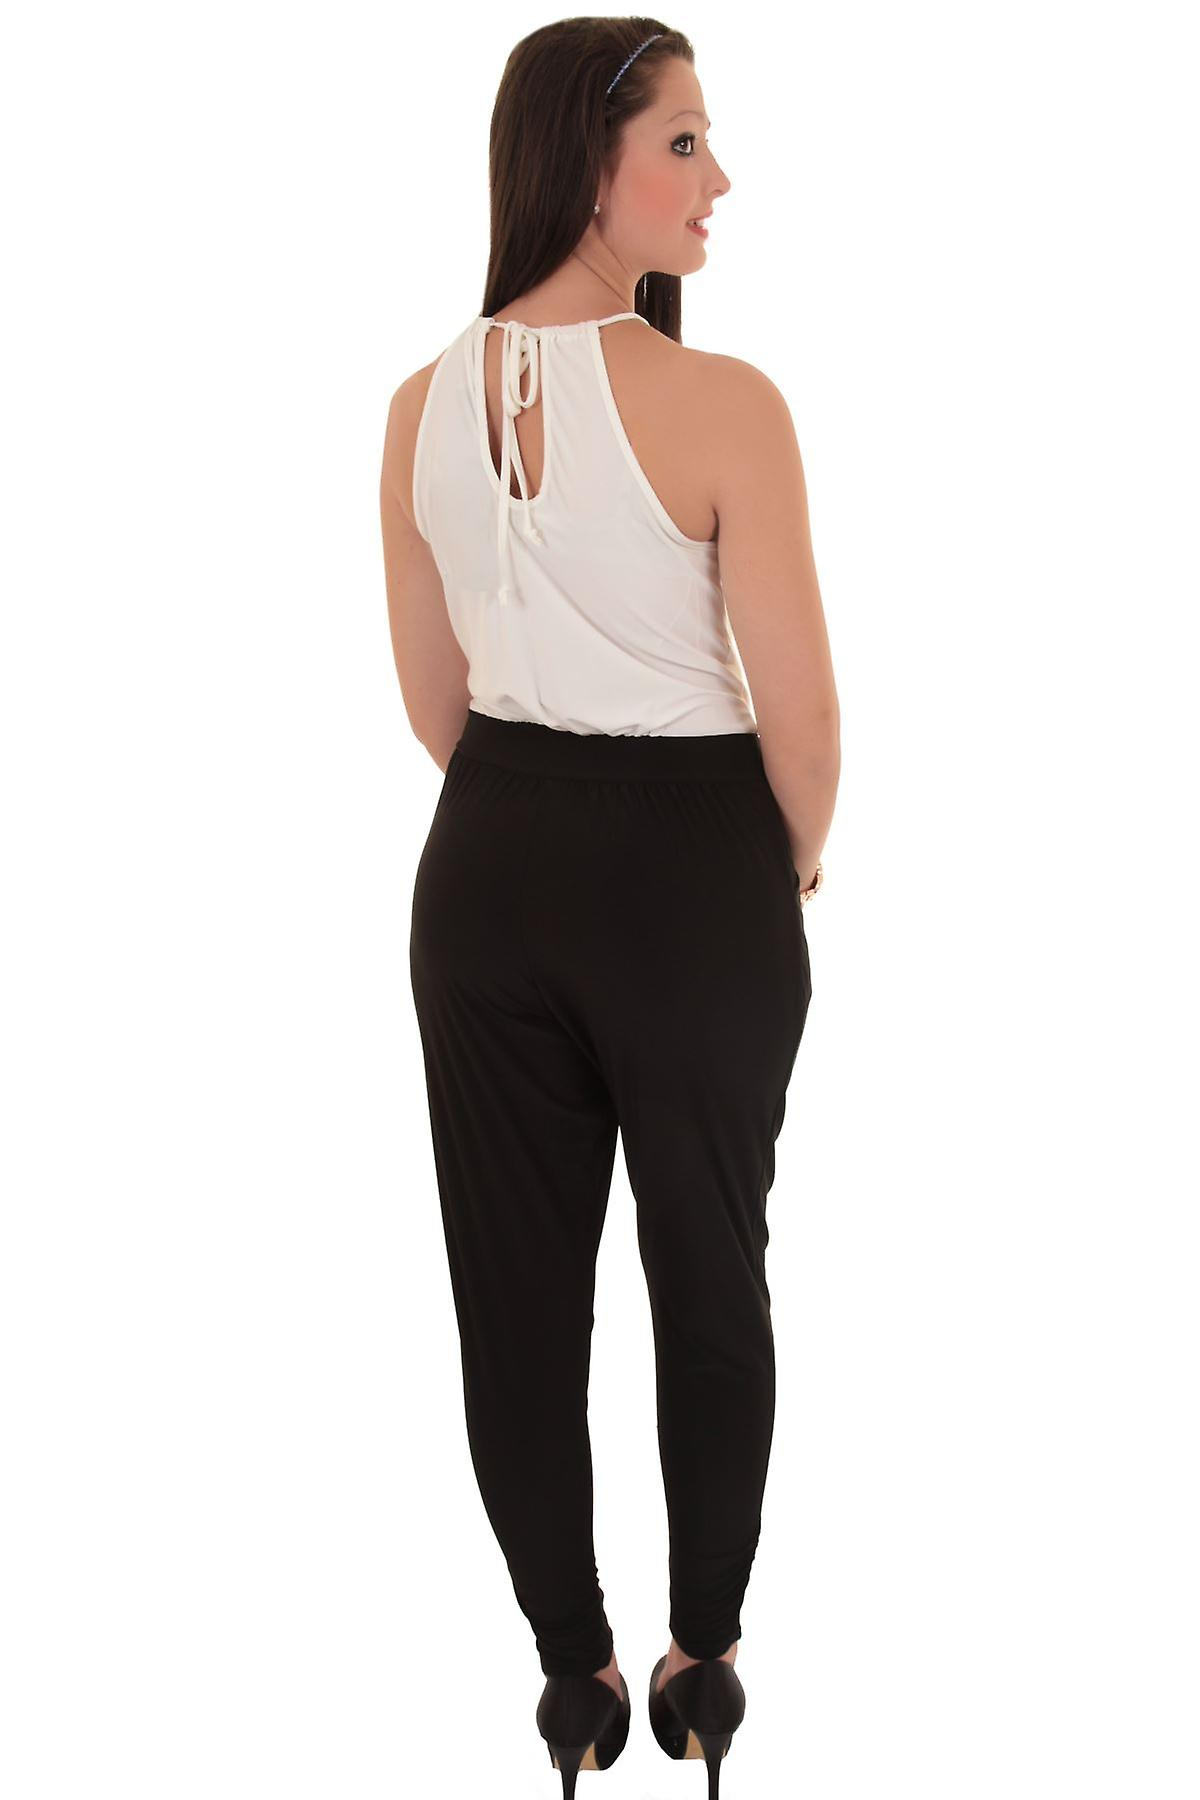 Ladies Sleevles Halter Neck Gold Plate Cross Over Ivory Black Women's Jumpsuit